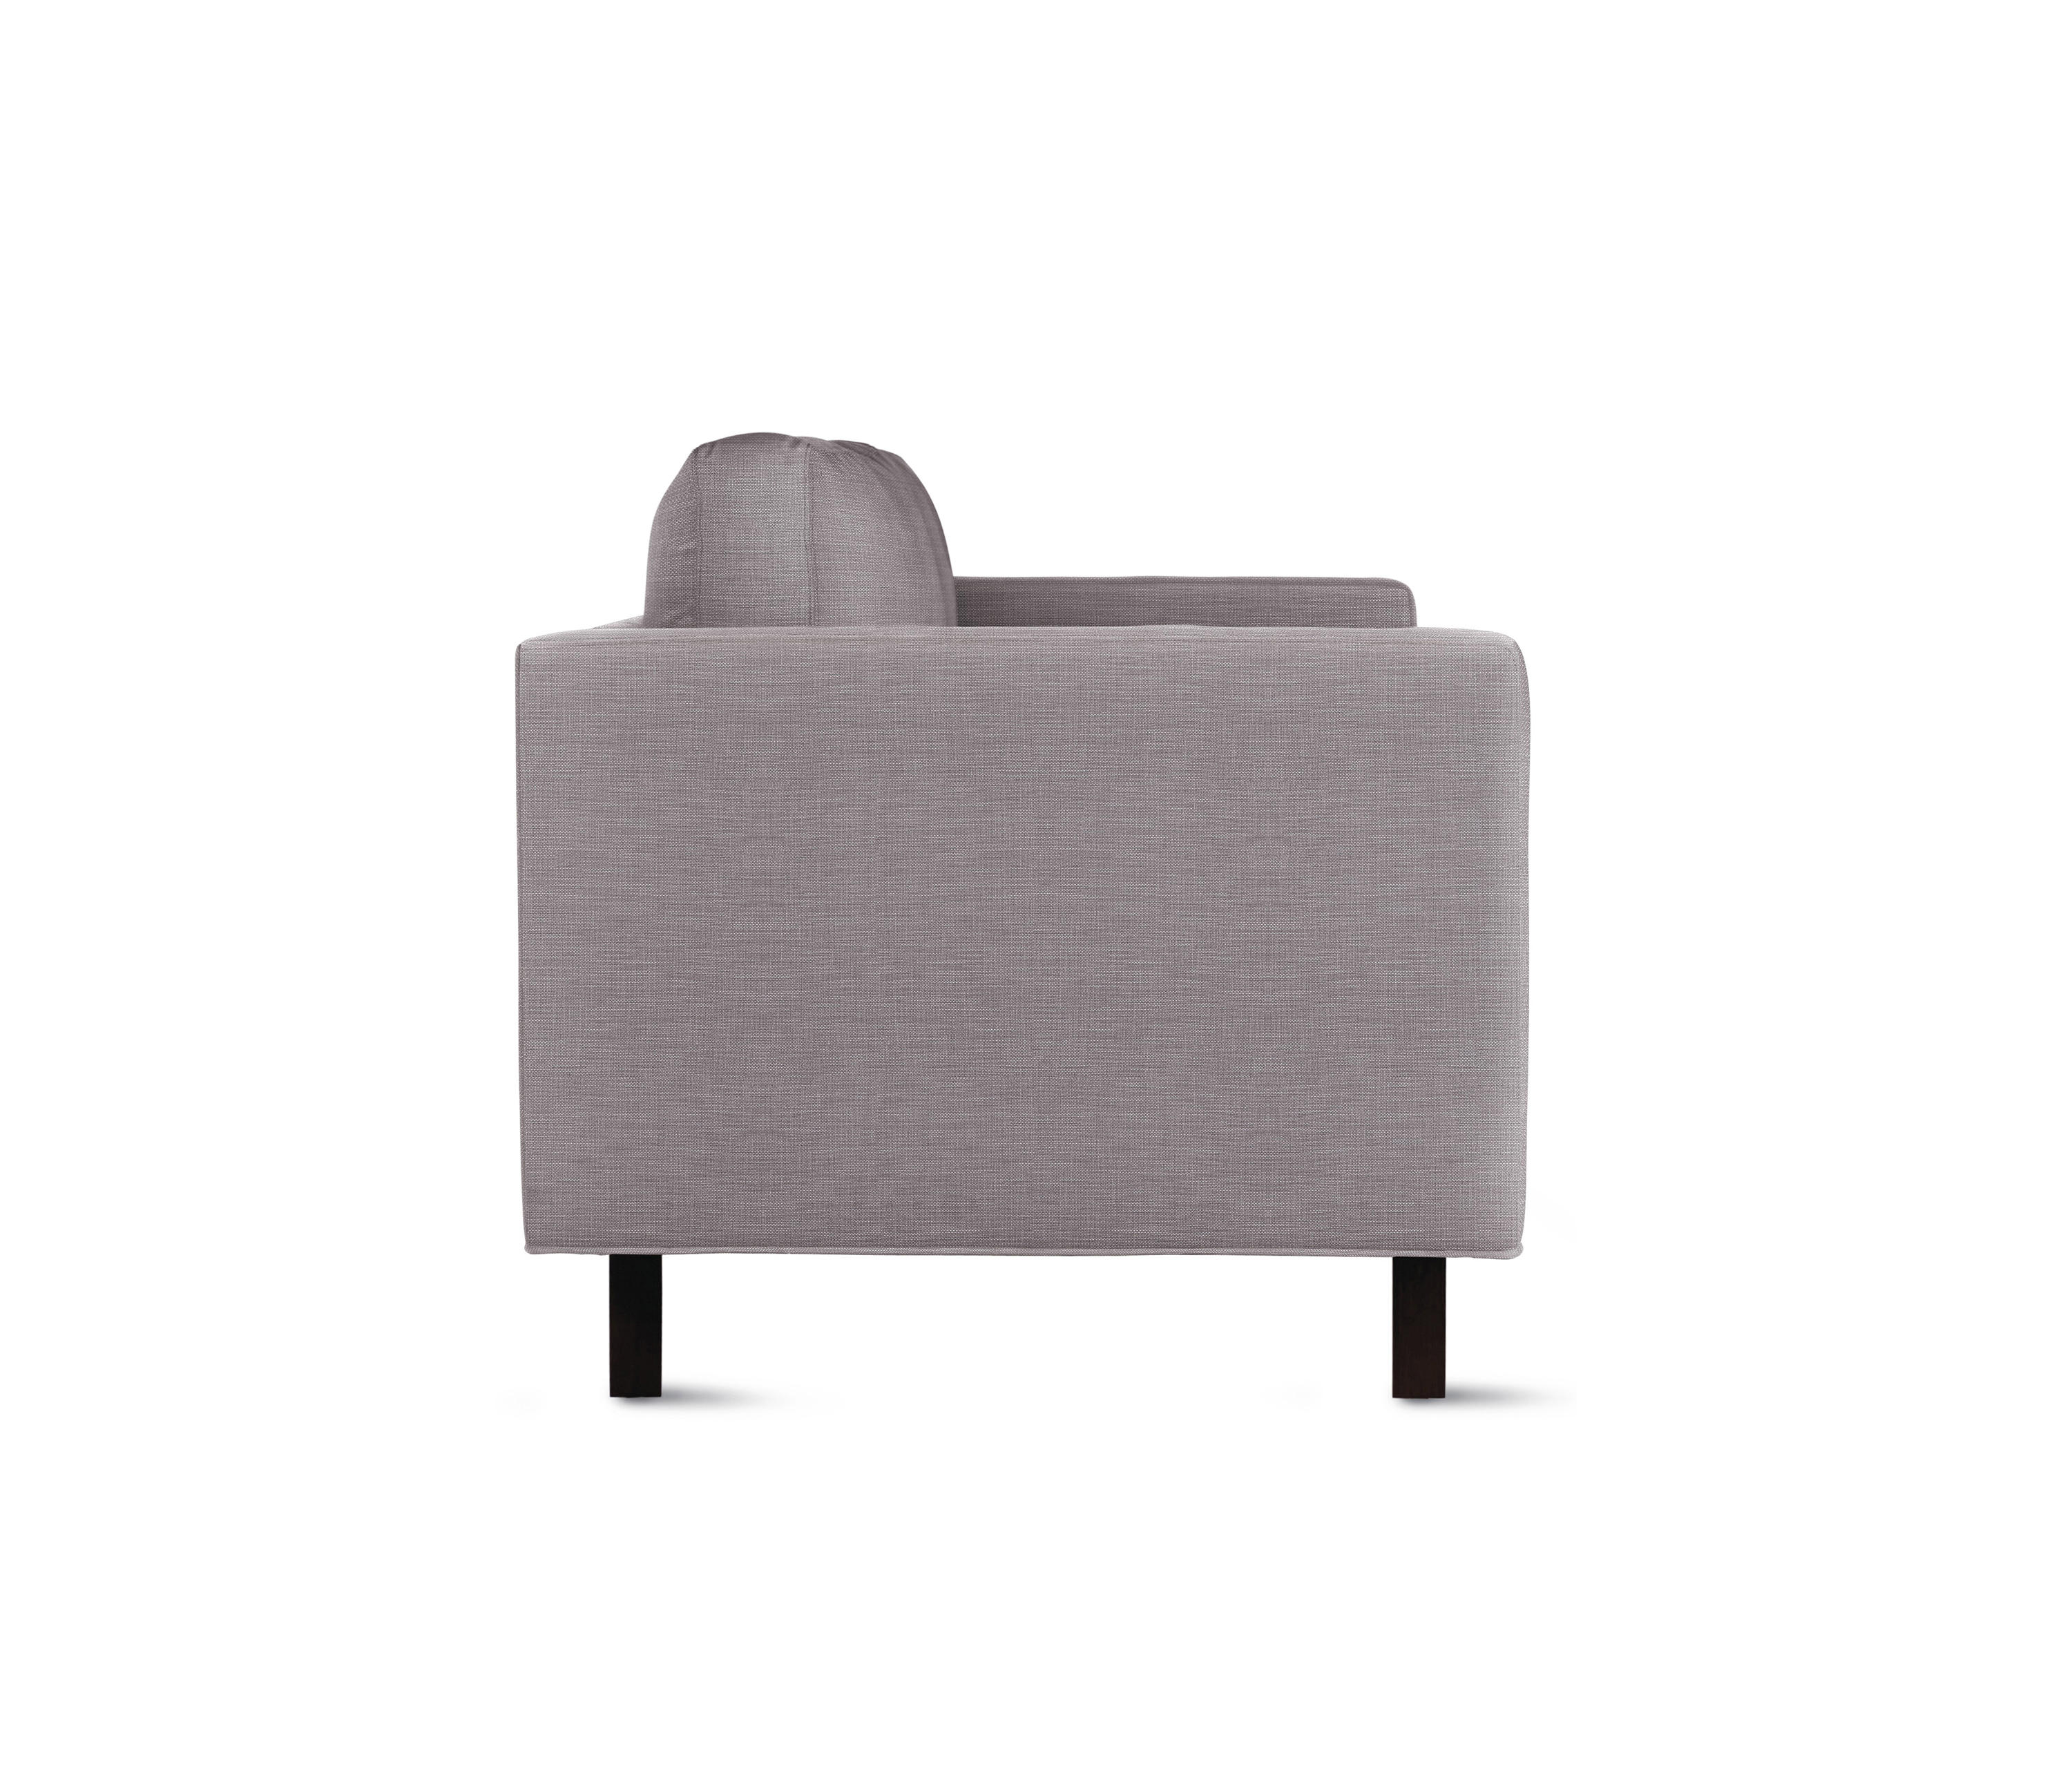 design within reach chair walnut aeron by herman miller manual goodland sofa in fabric legs sofas from